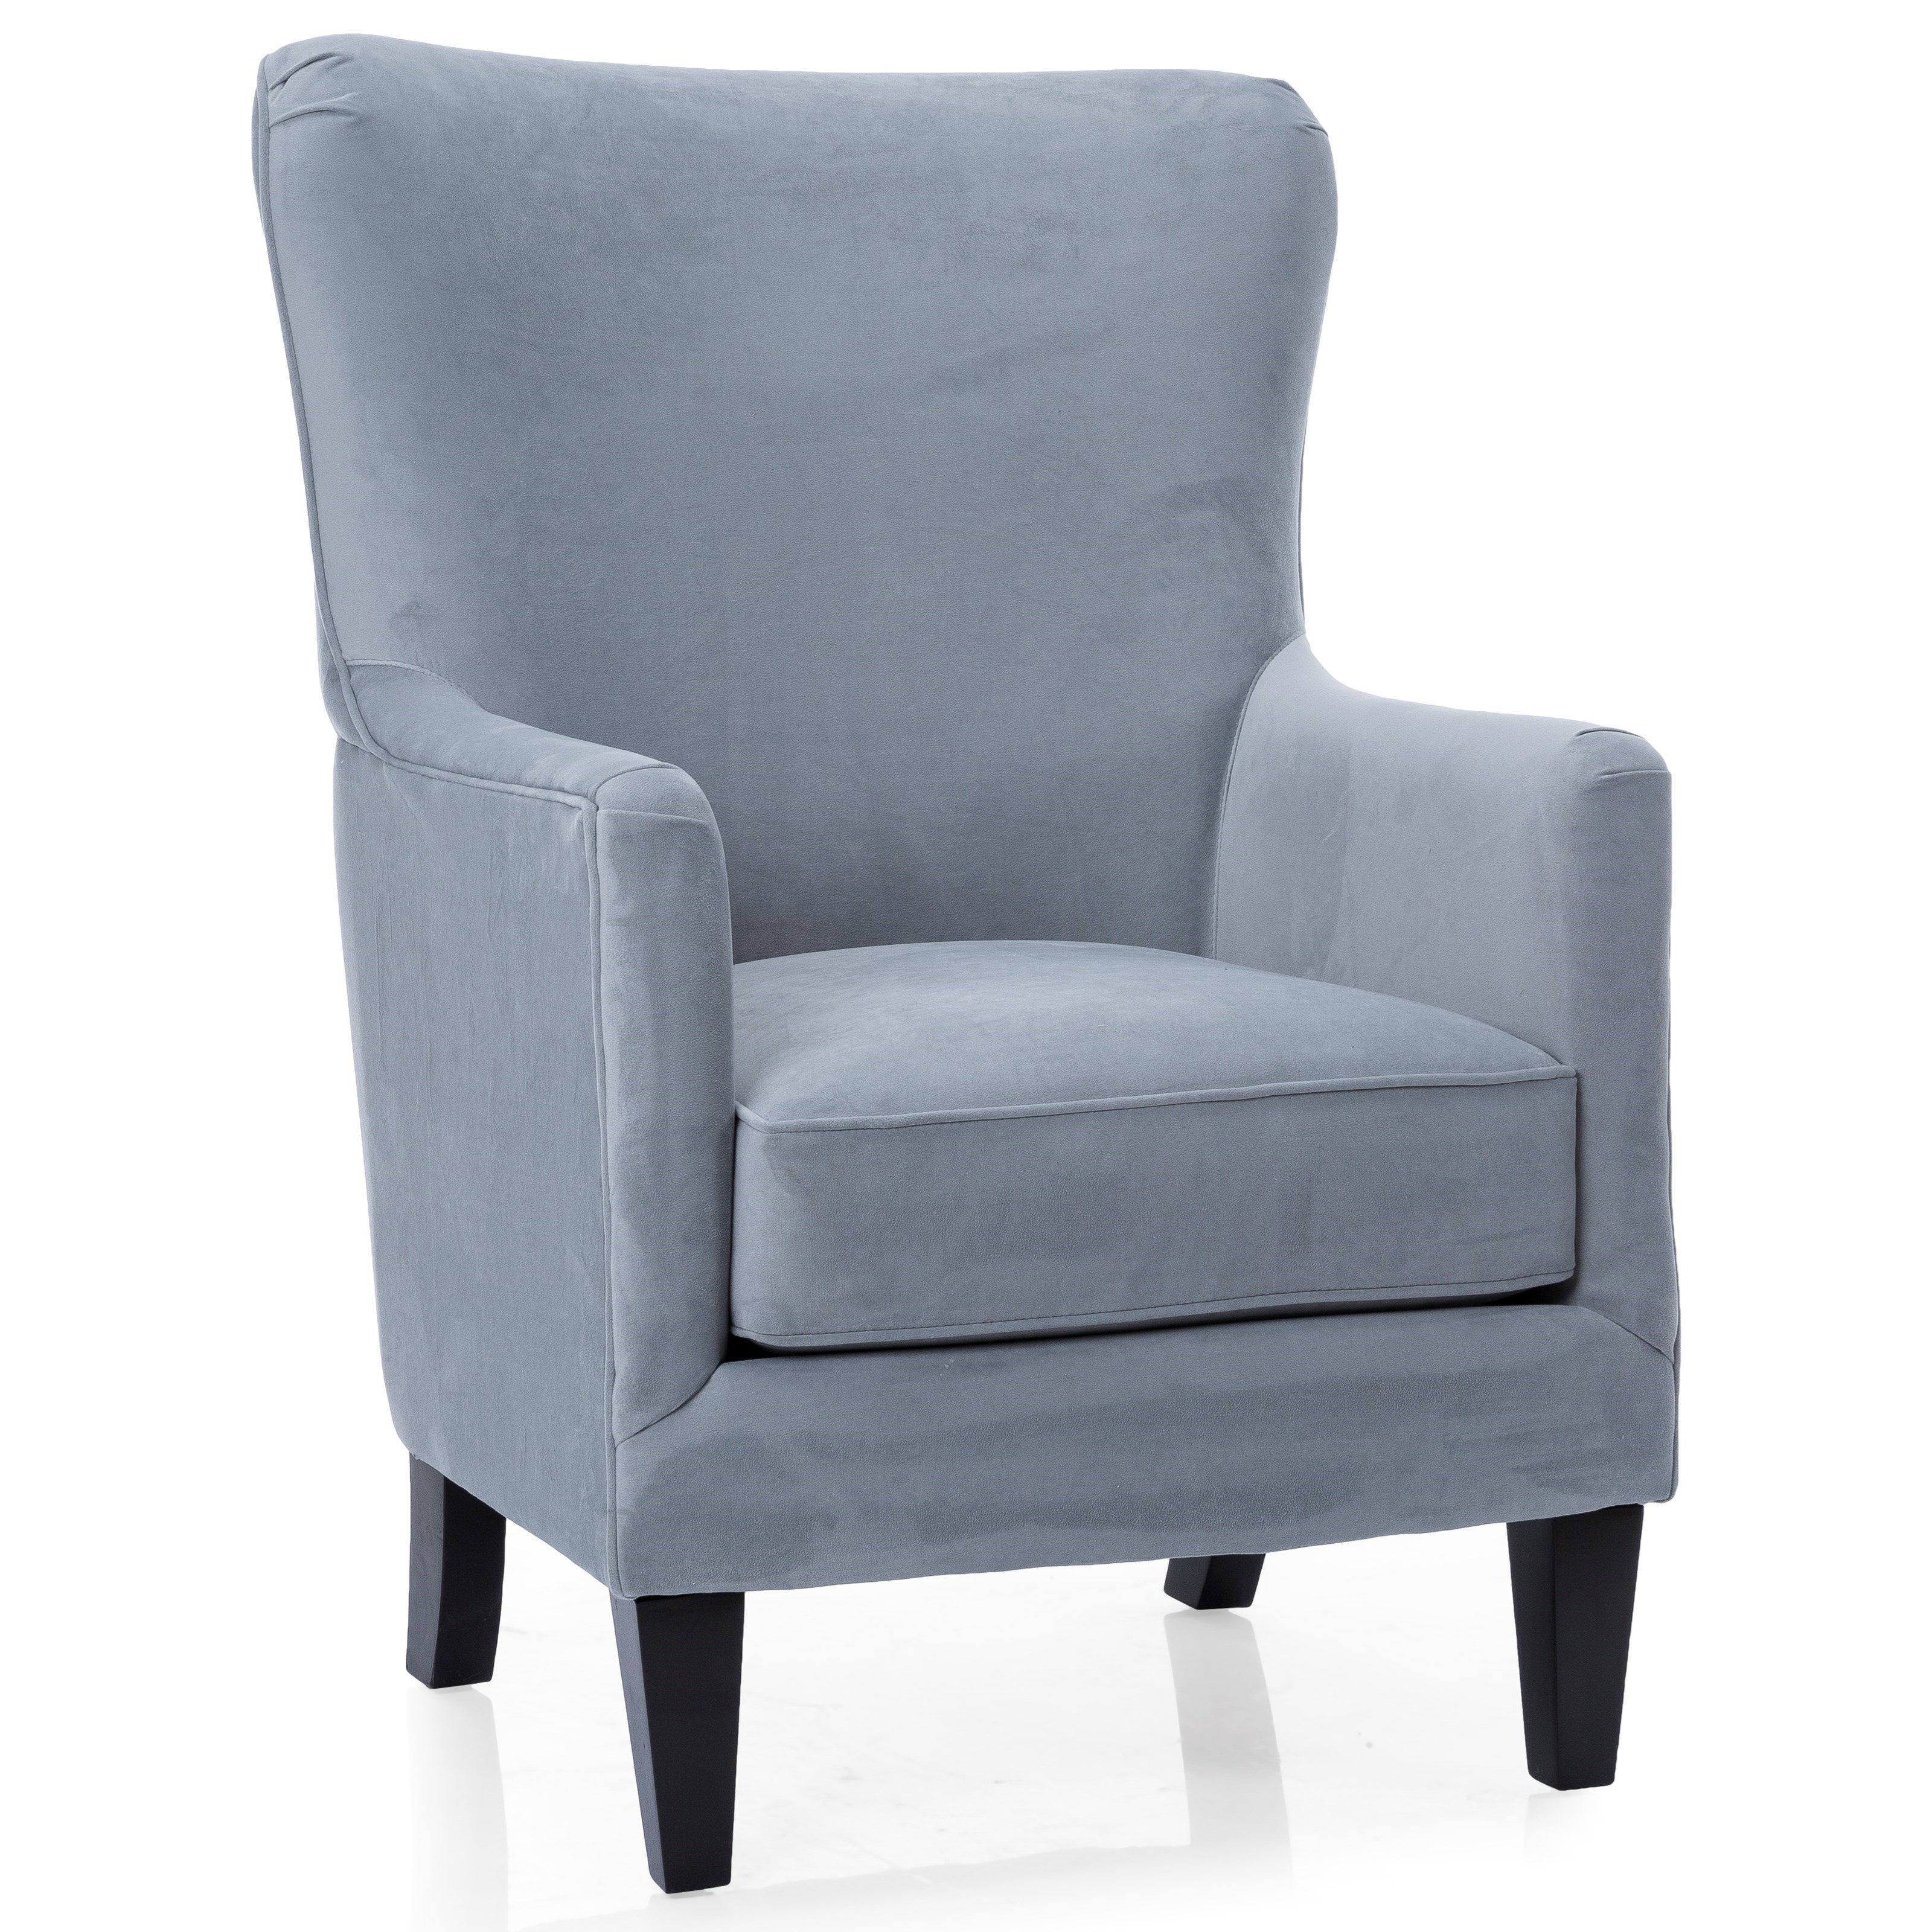 2379 Contemporary Wing Back Chair by Decor-Rest at Johnny Janosik